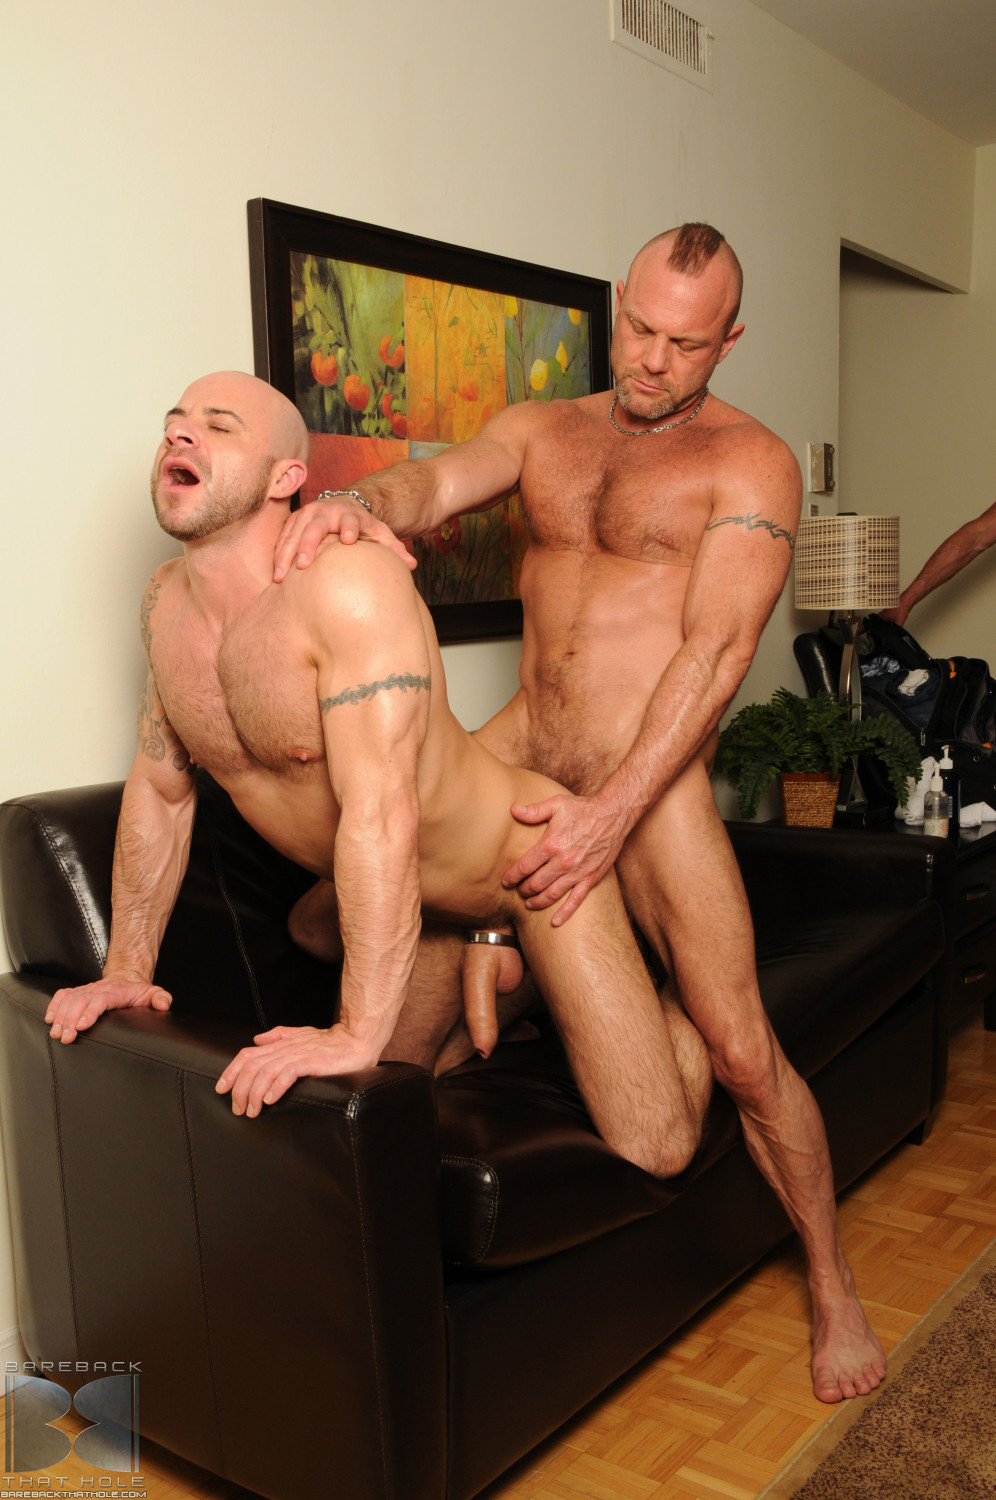 Bareback-That-Hole-Chad-Brock-and-Ben-Statham-big-uncut-cock-12 Bareback That Hole: Chad Brock and Ben Statham